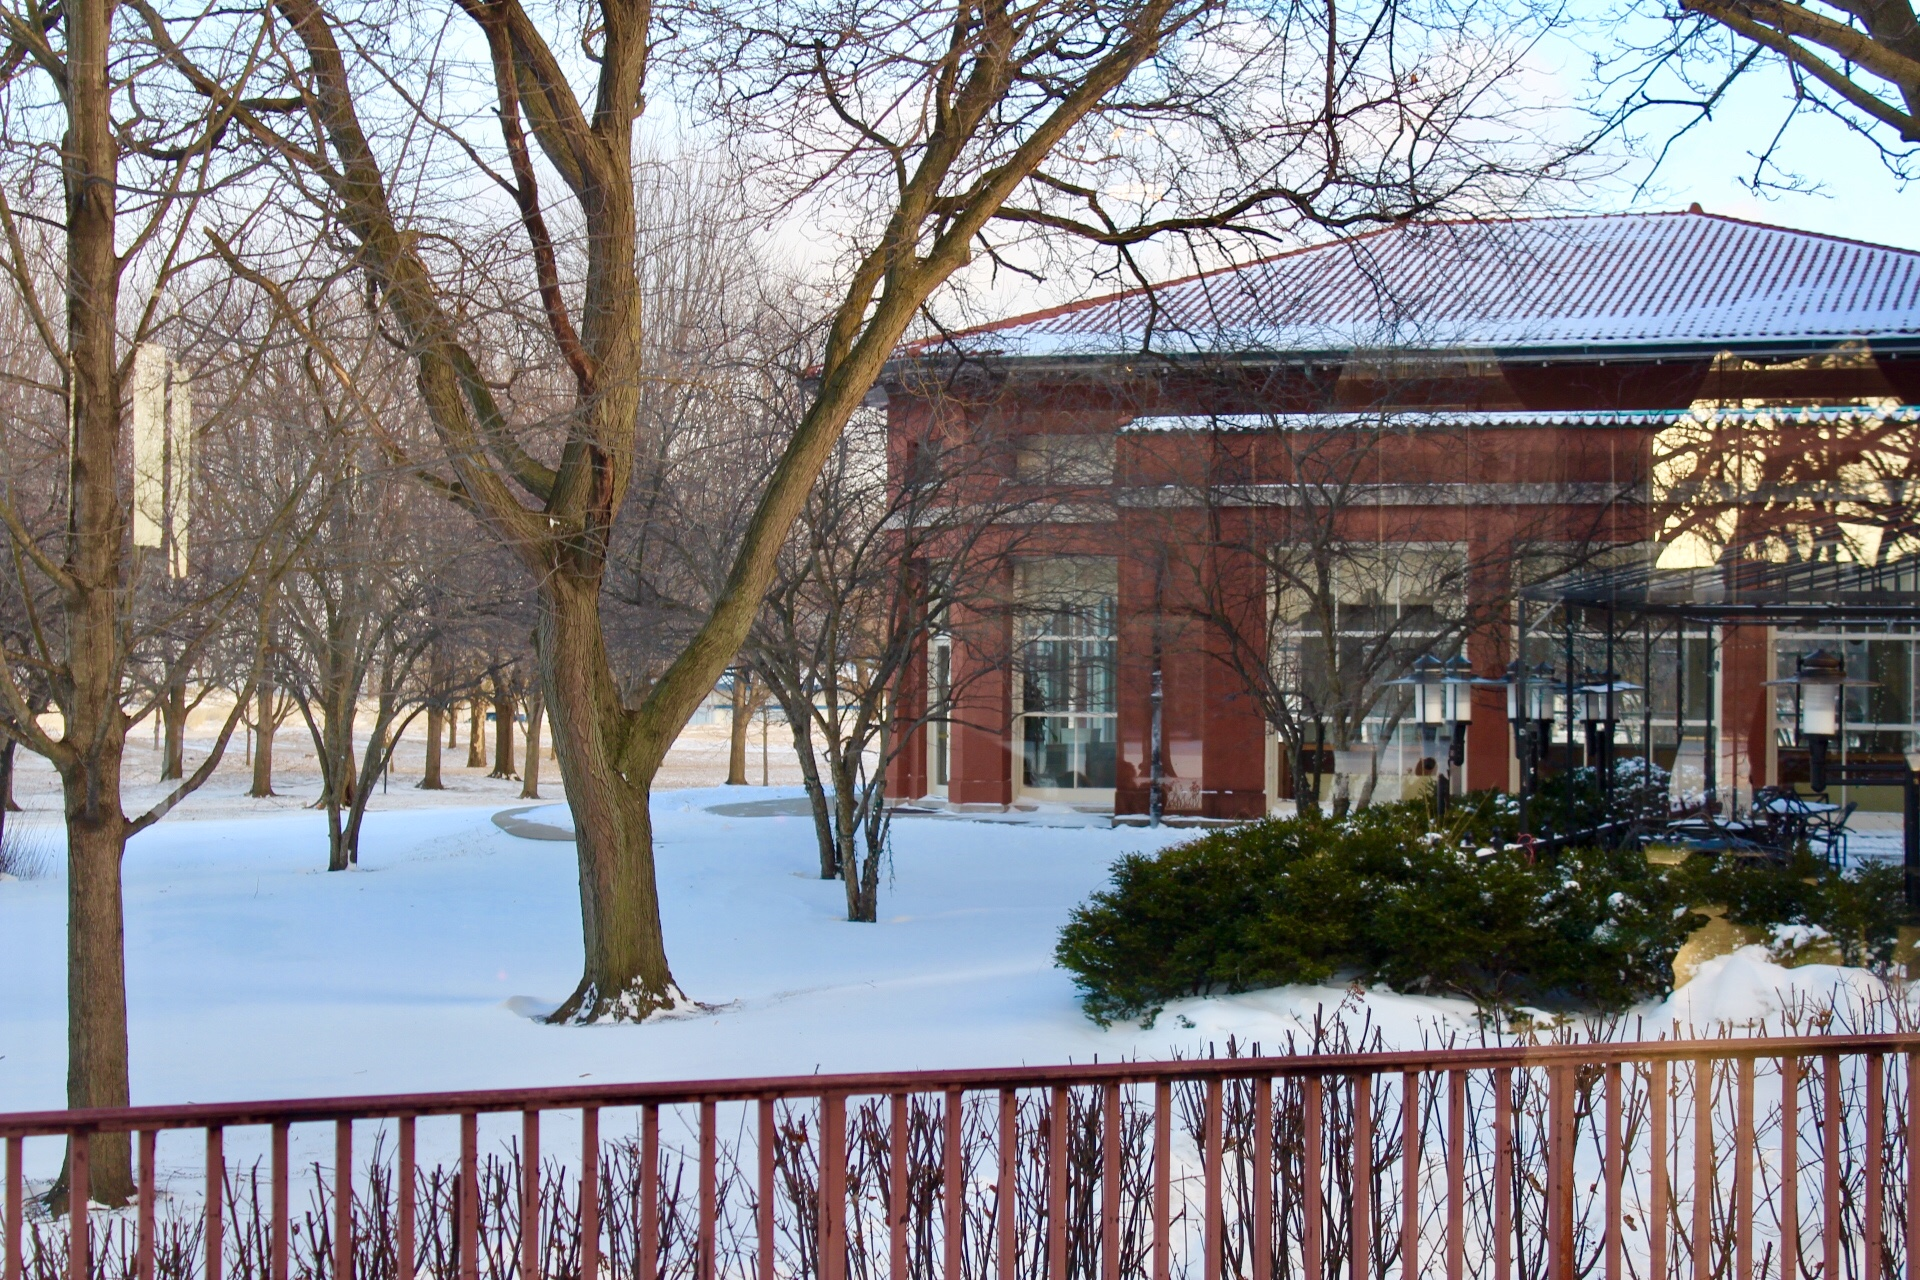 South Shore Cultural Center